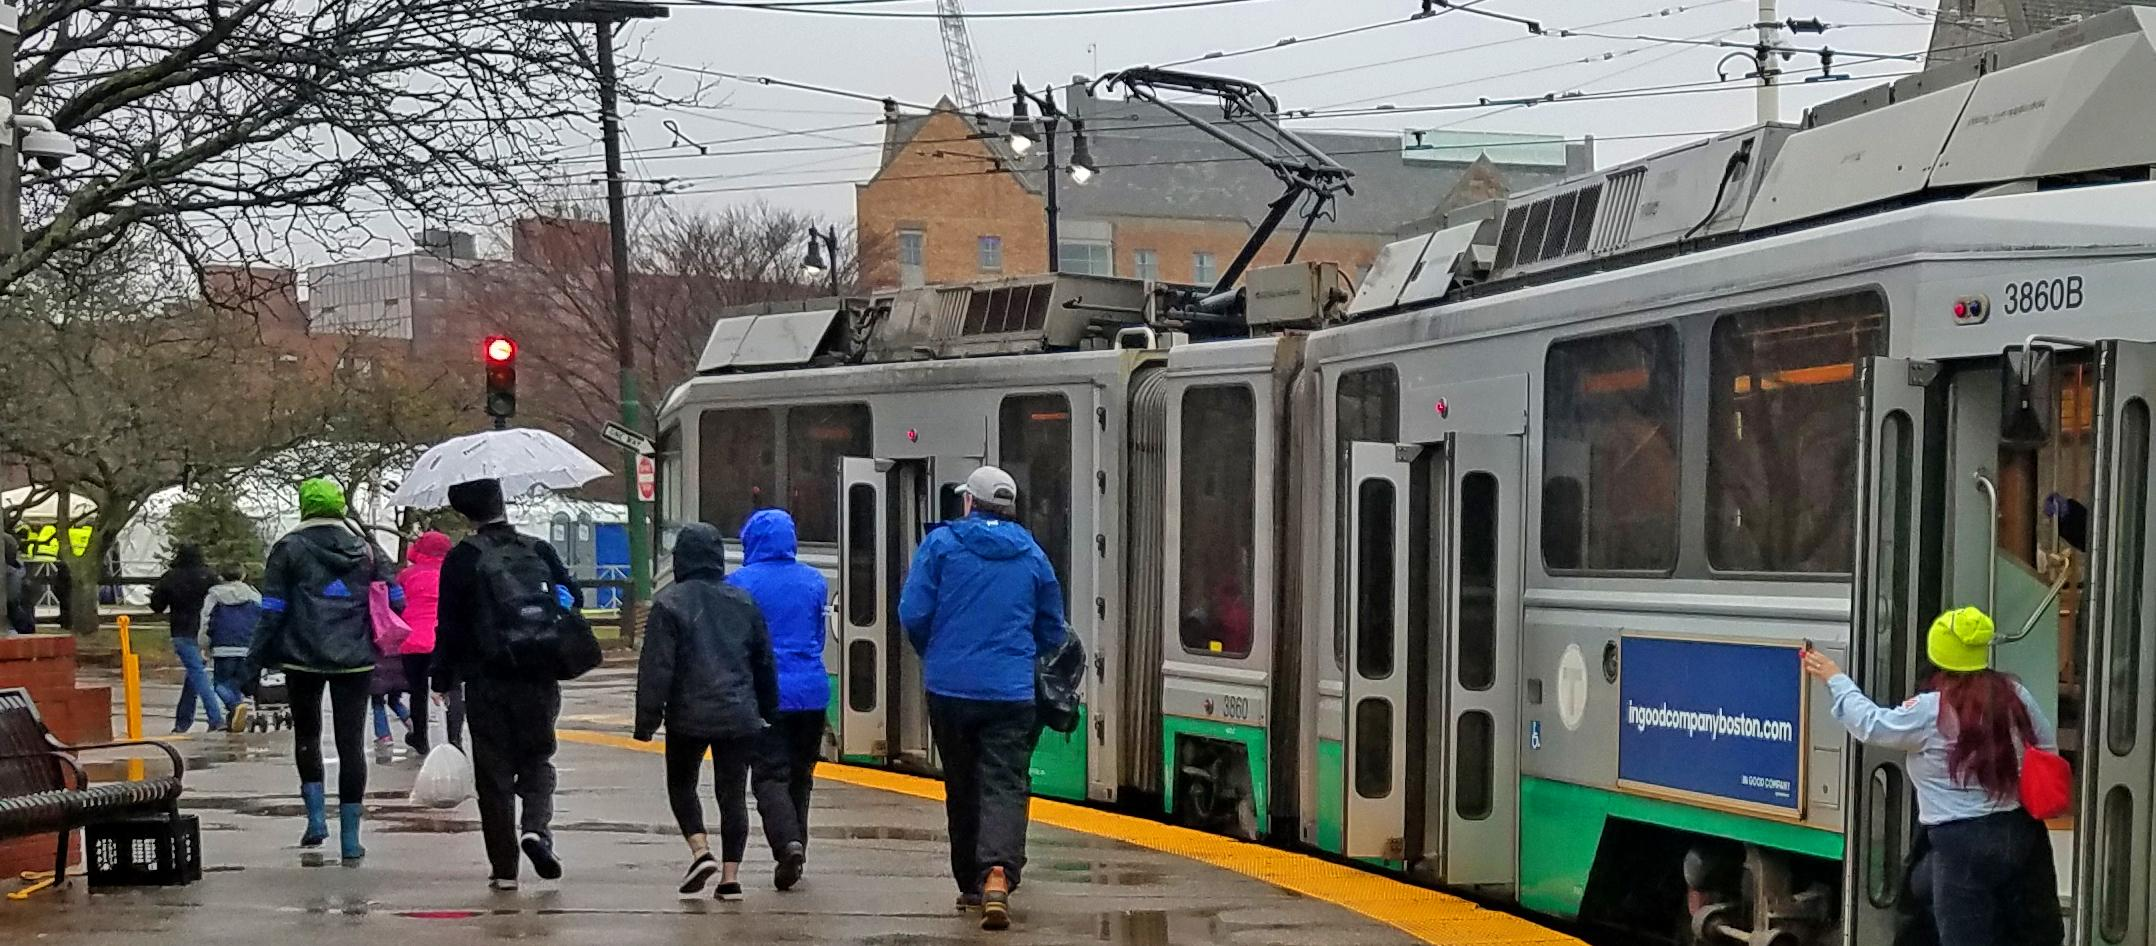 Riders near the Green Line during rainy weather at Boston Marathon 2018